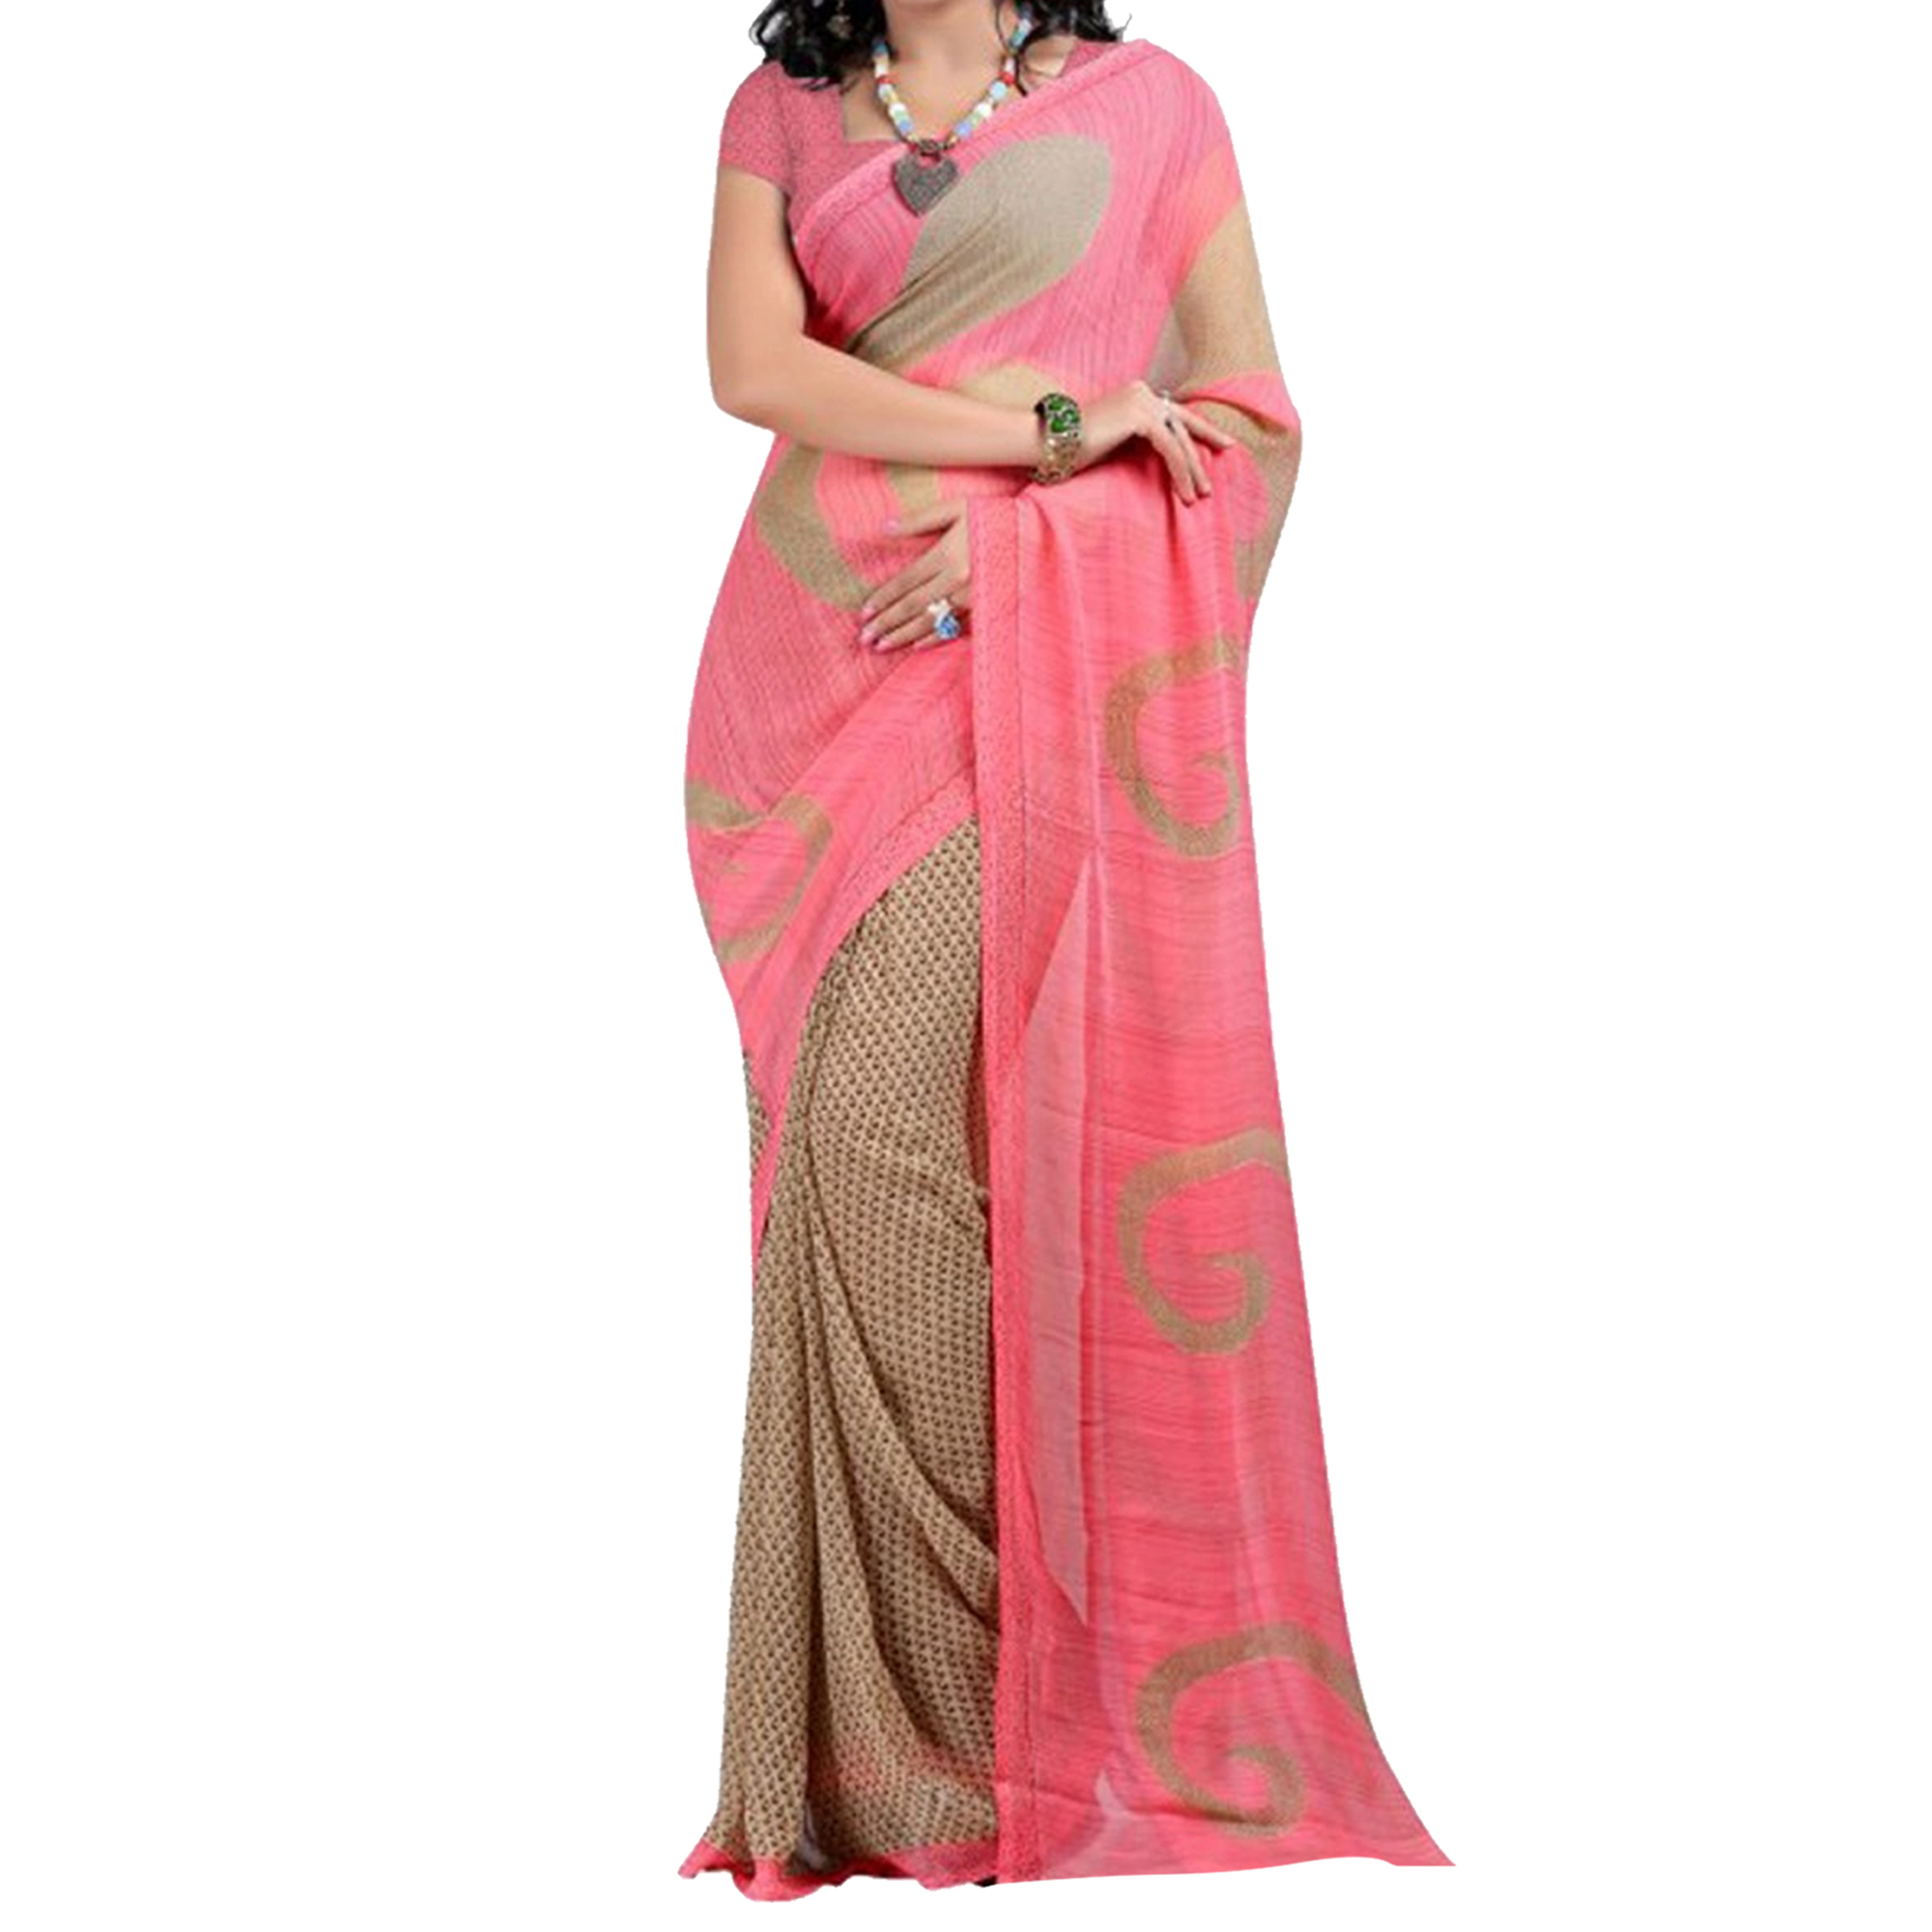 Beige - Pink - Green Georgette Printed Sarees (Pack of 3)